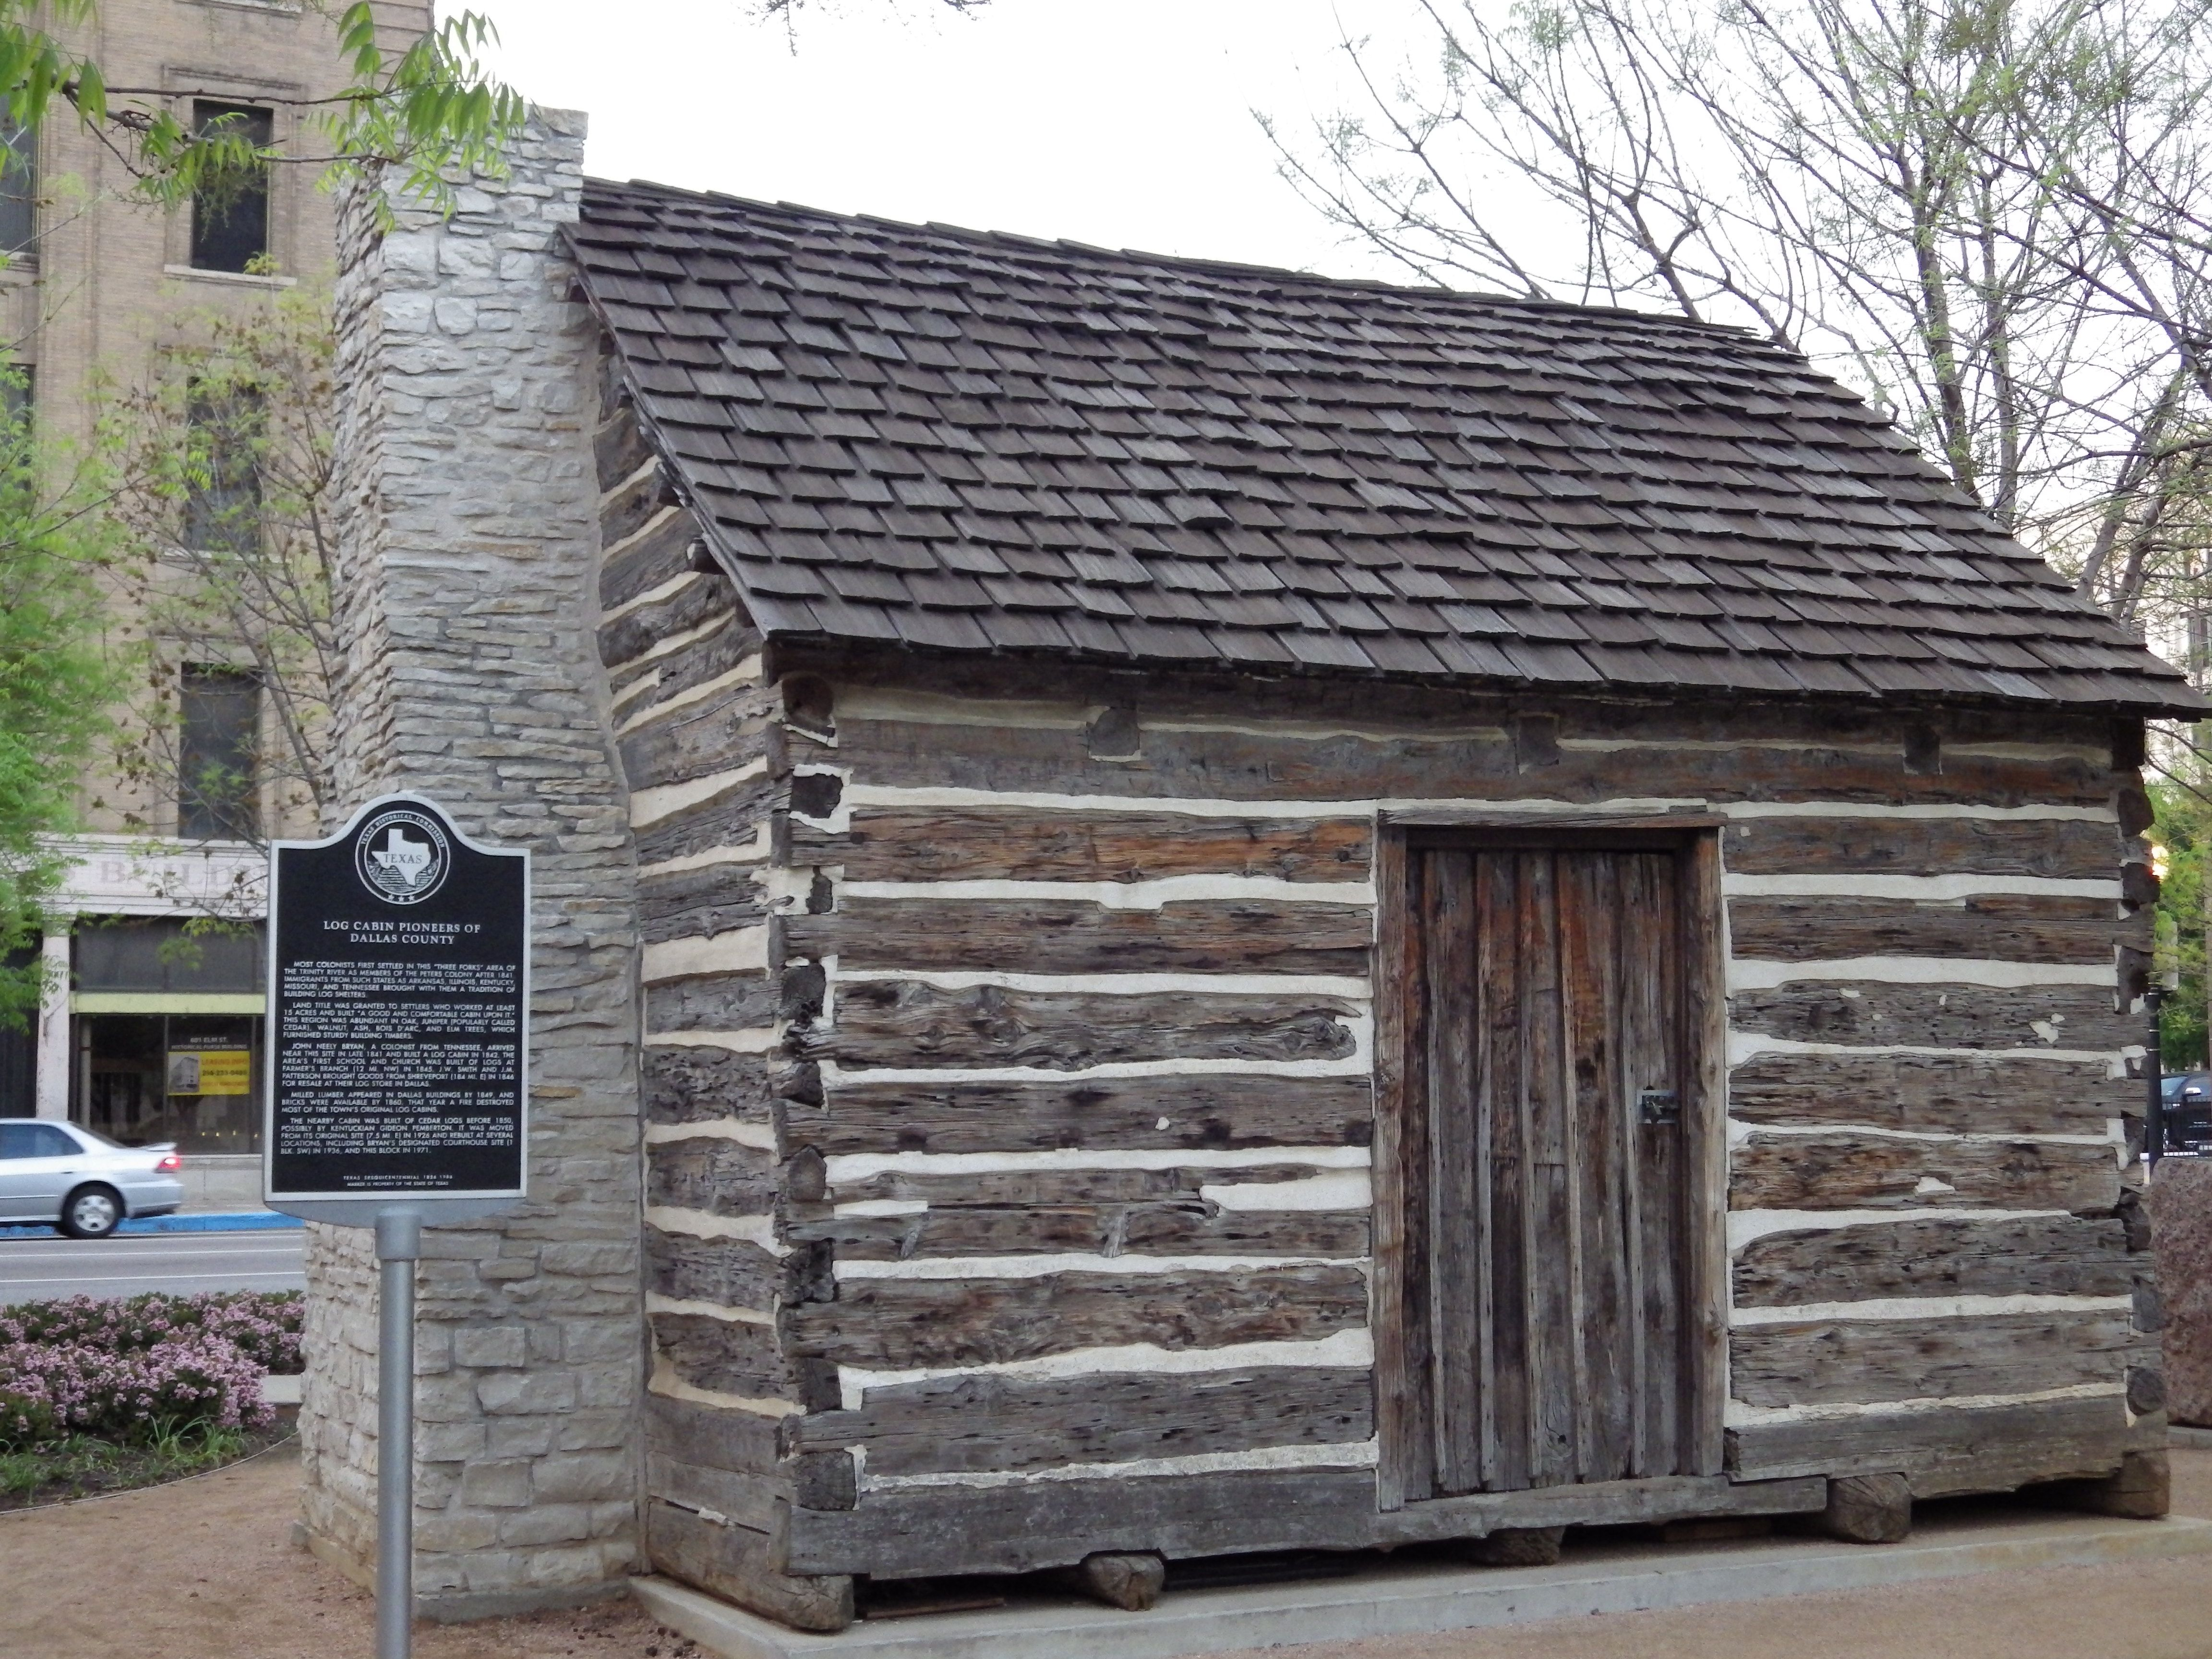 John Neely Bryan Cabin Also In Dealey Plaza In Downtown Dallas. This Is A  Reconstructed